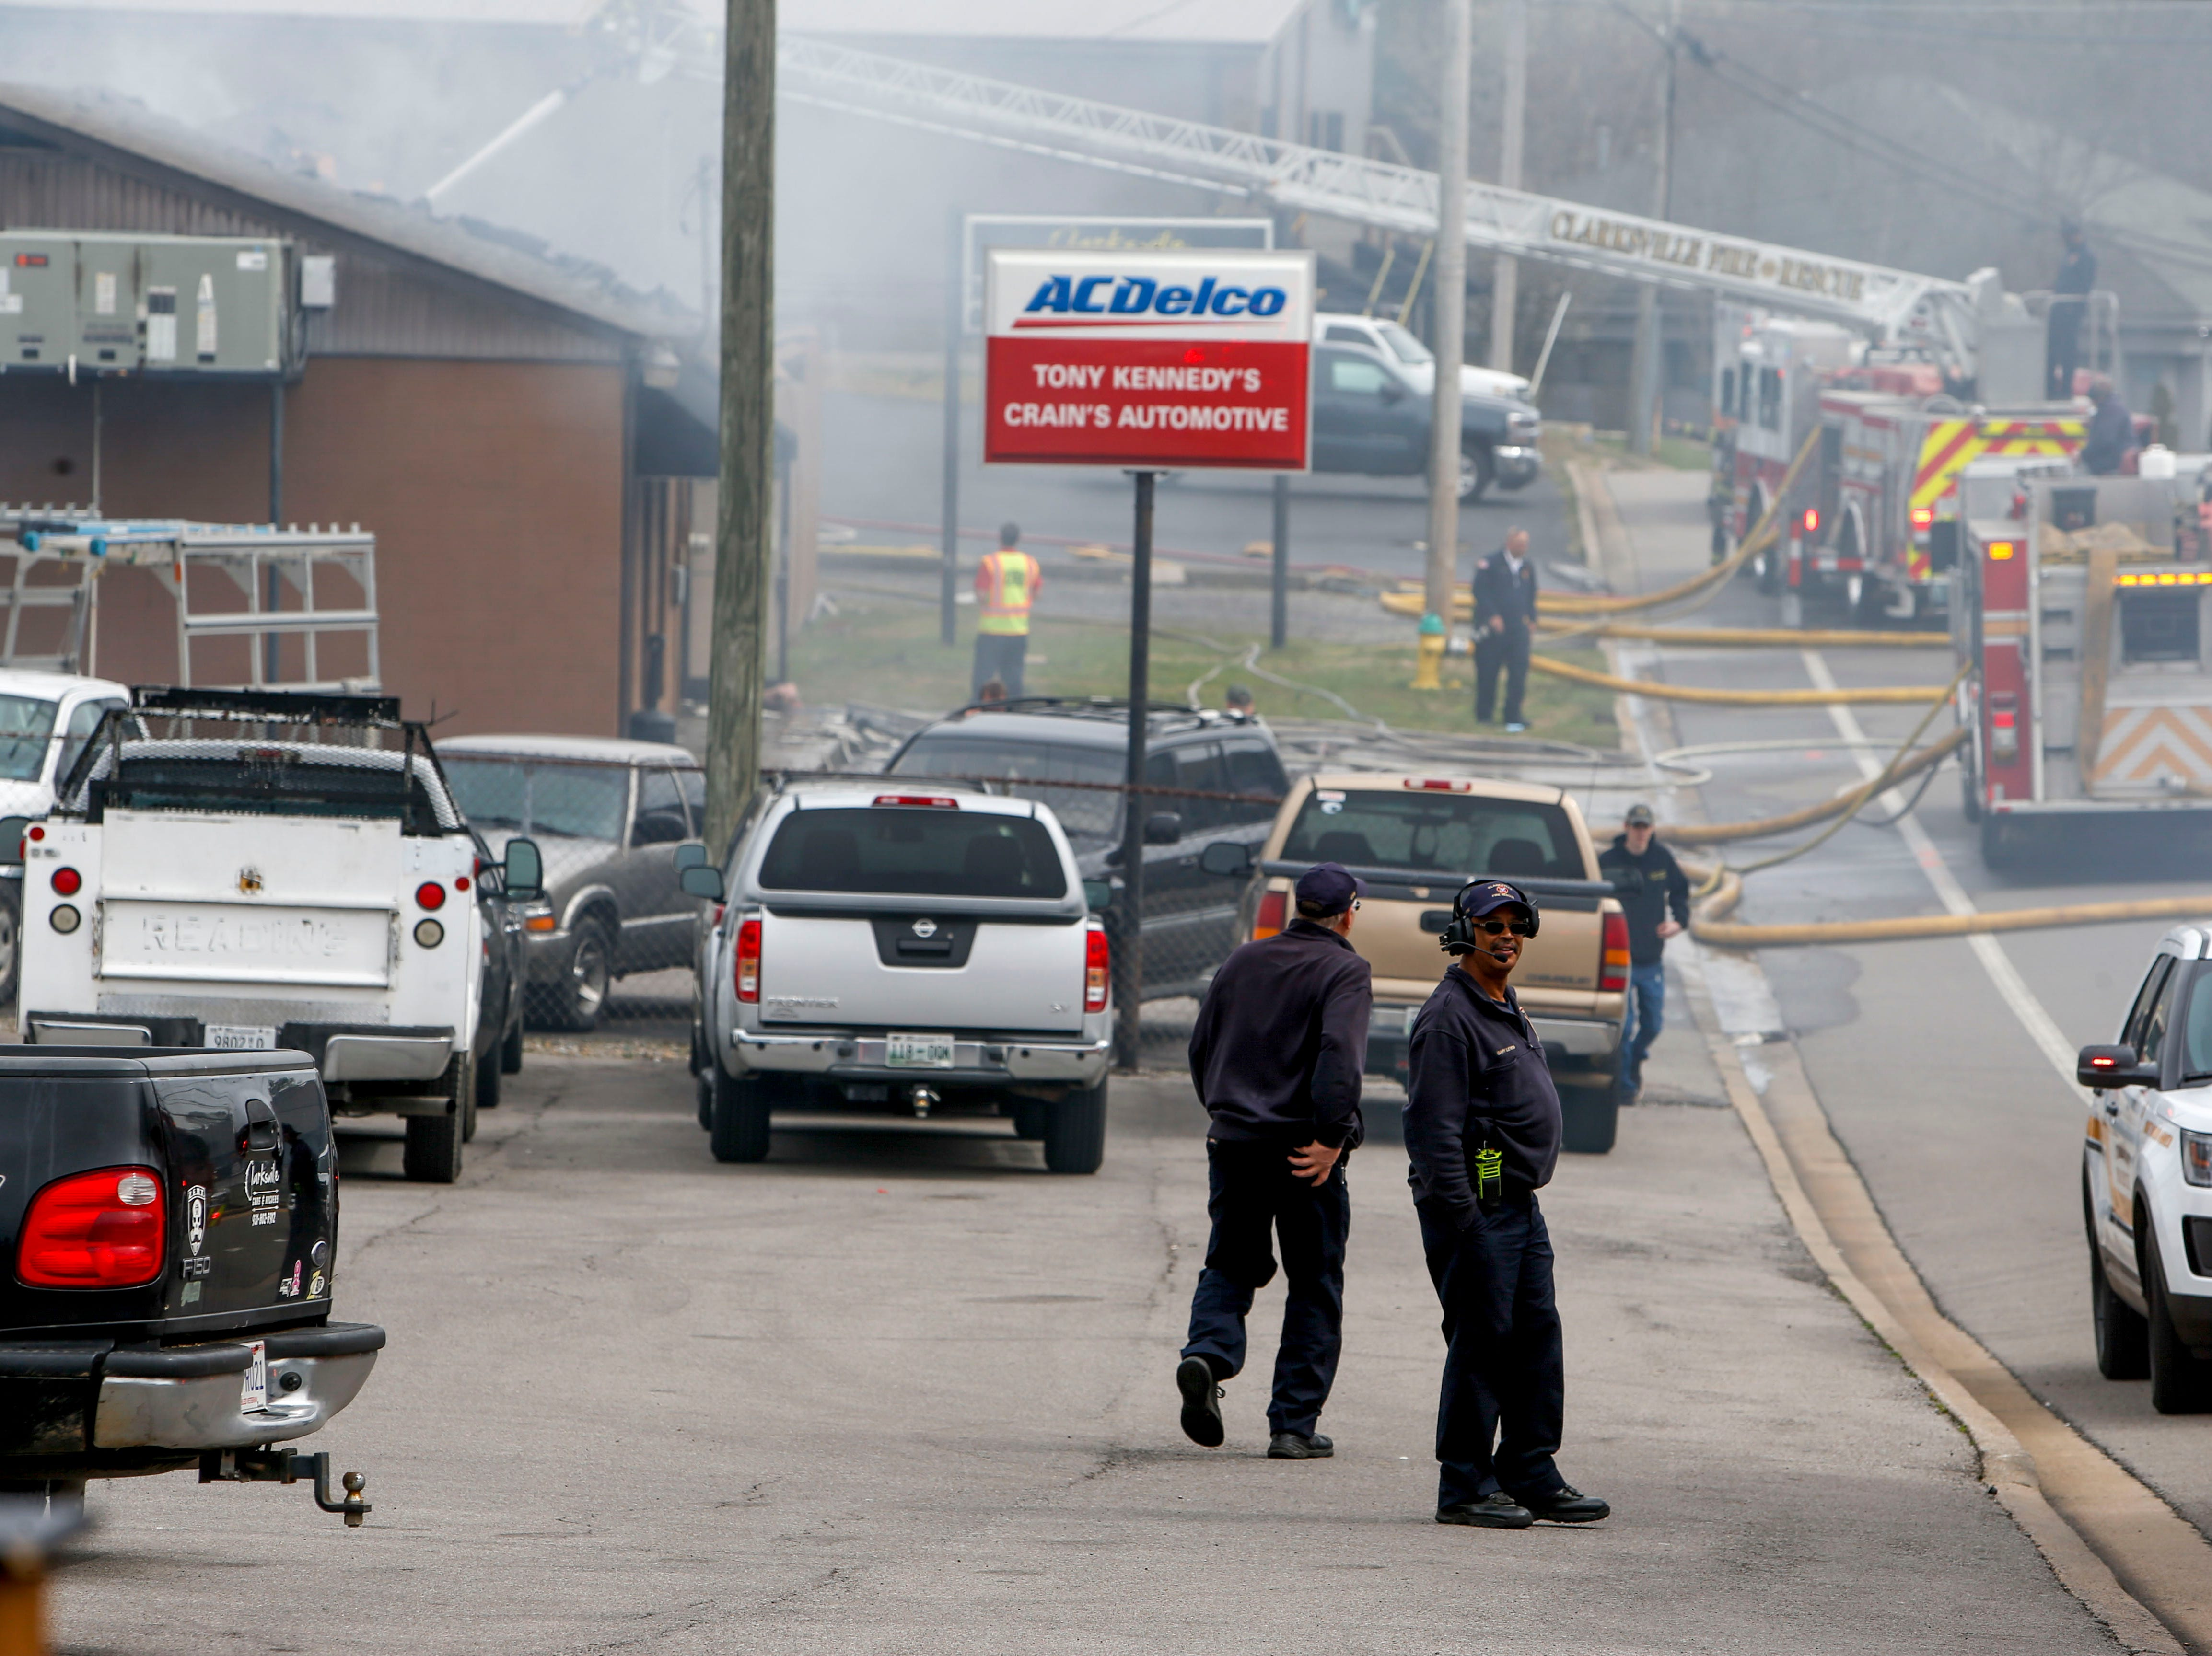 Clarksville first responders work to put out a fire in the shooting range at Clarksville Guns & Archery in Clarksville, Tenn., on Tuesday, March 12, 2019.